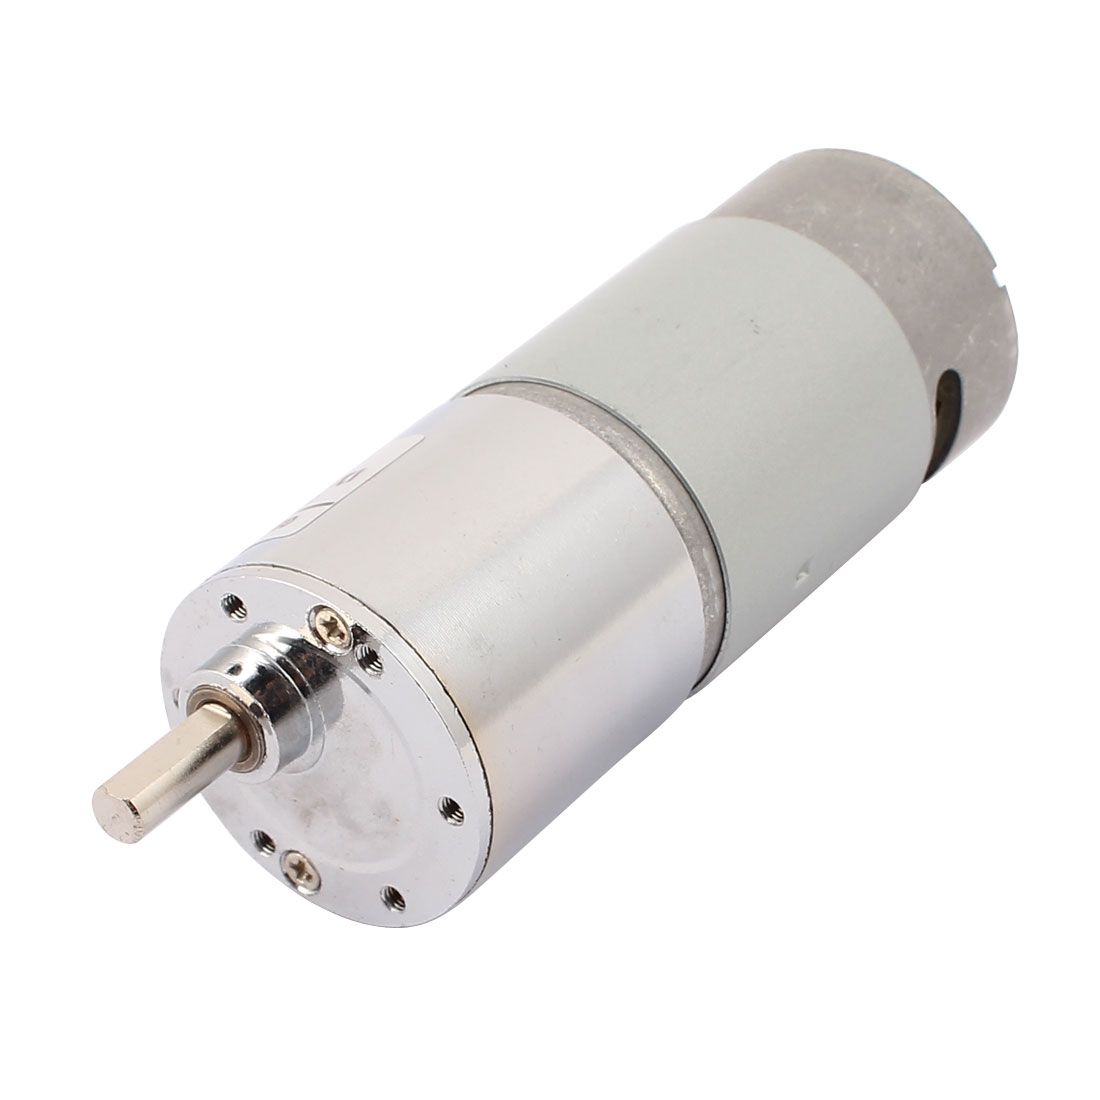 DC 12V 2.5RPM High Torque Magnetic Electric Reduce Gear Box Motor